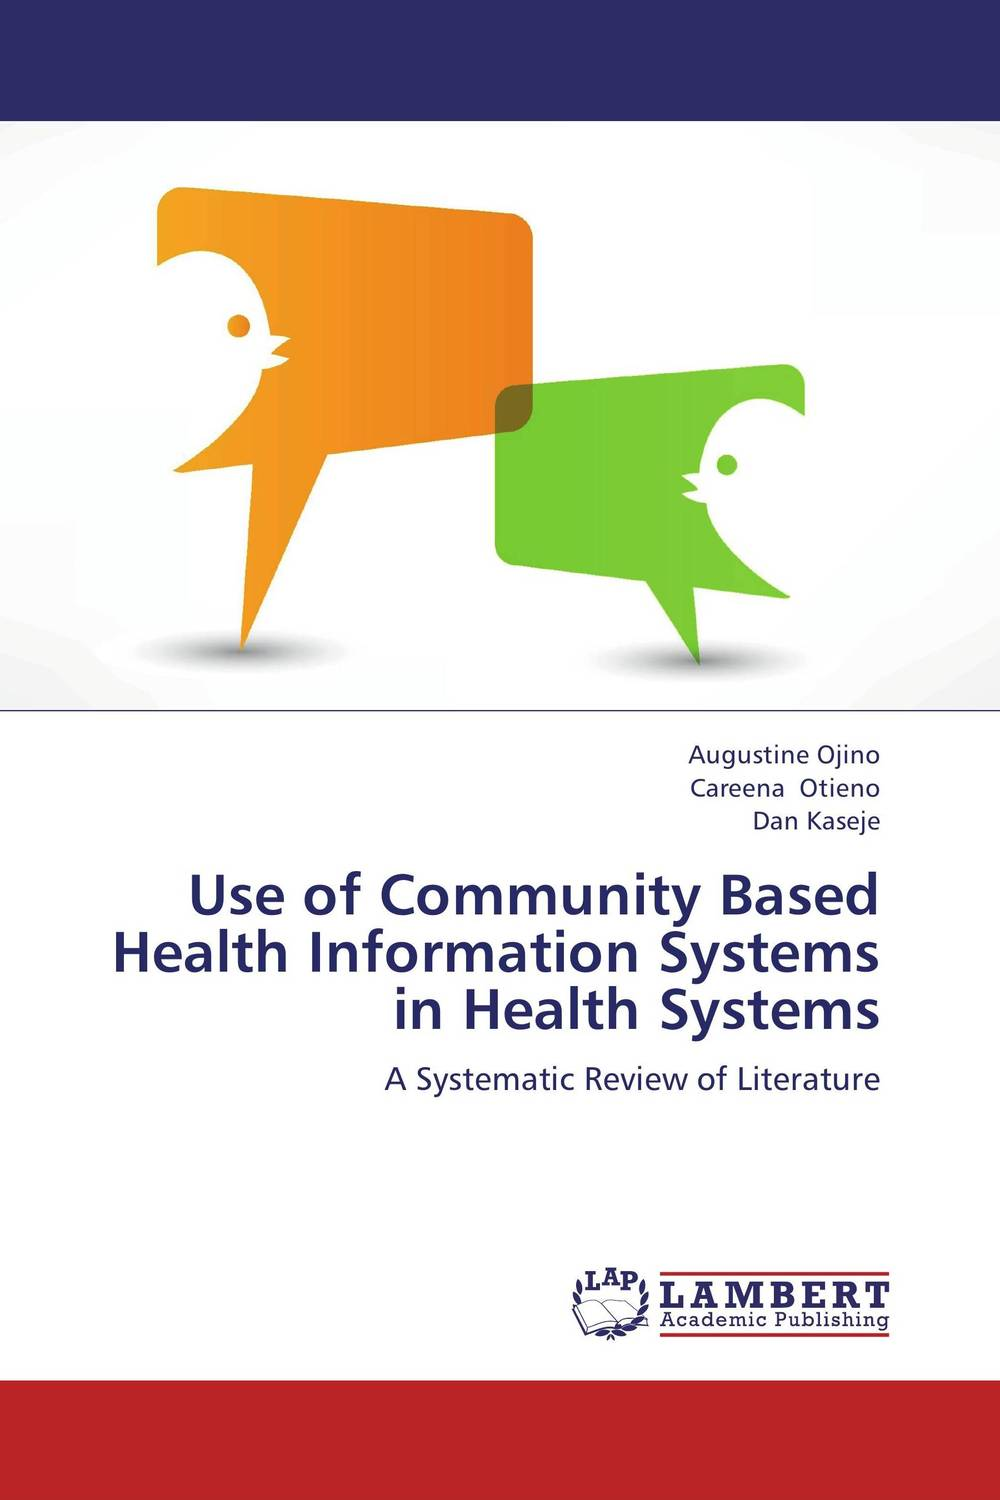 Use of Community Based Health Information Systems in Health Systems catalog 2003 information systems and decision sciences cat alog